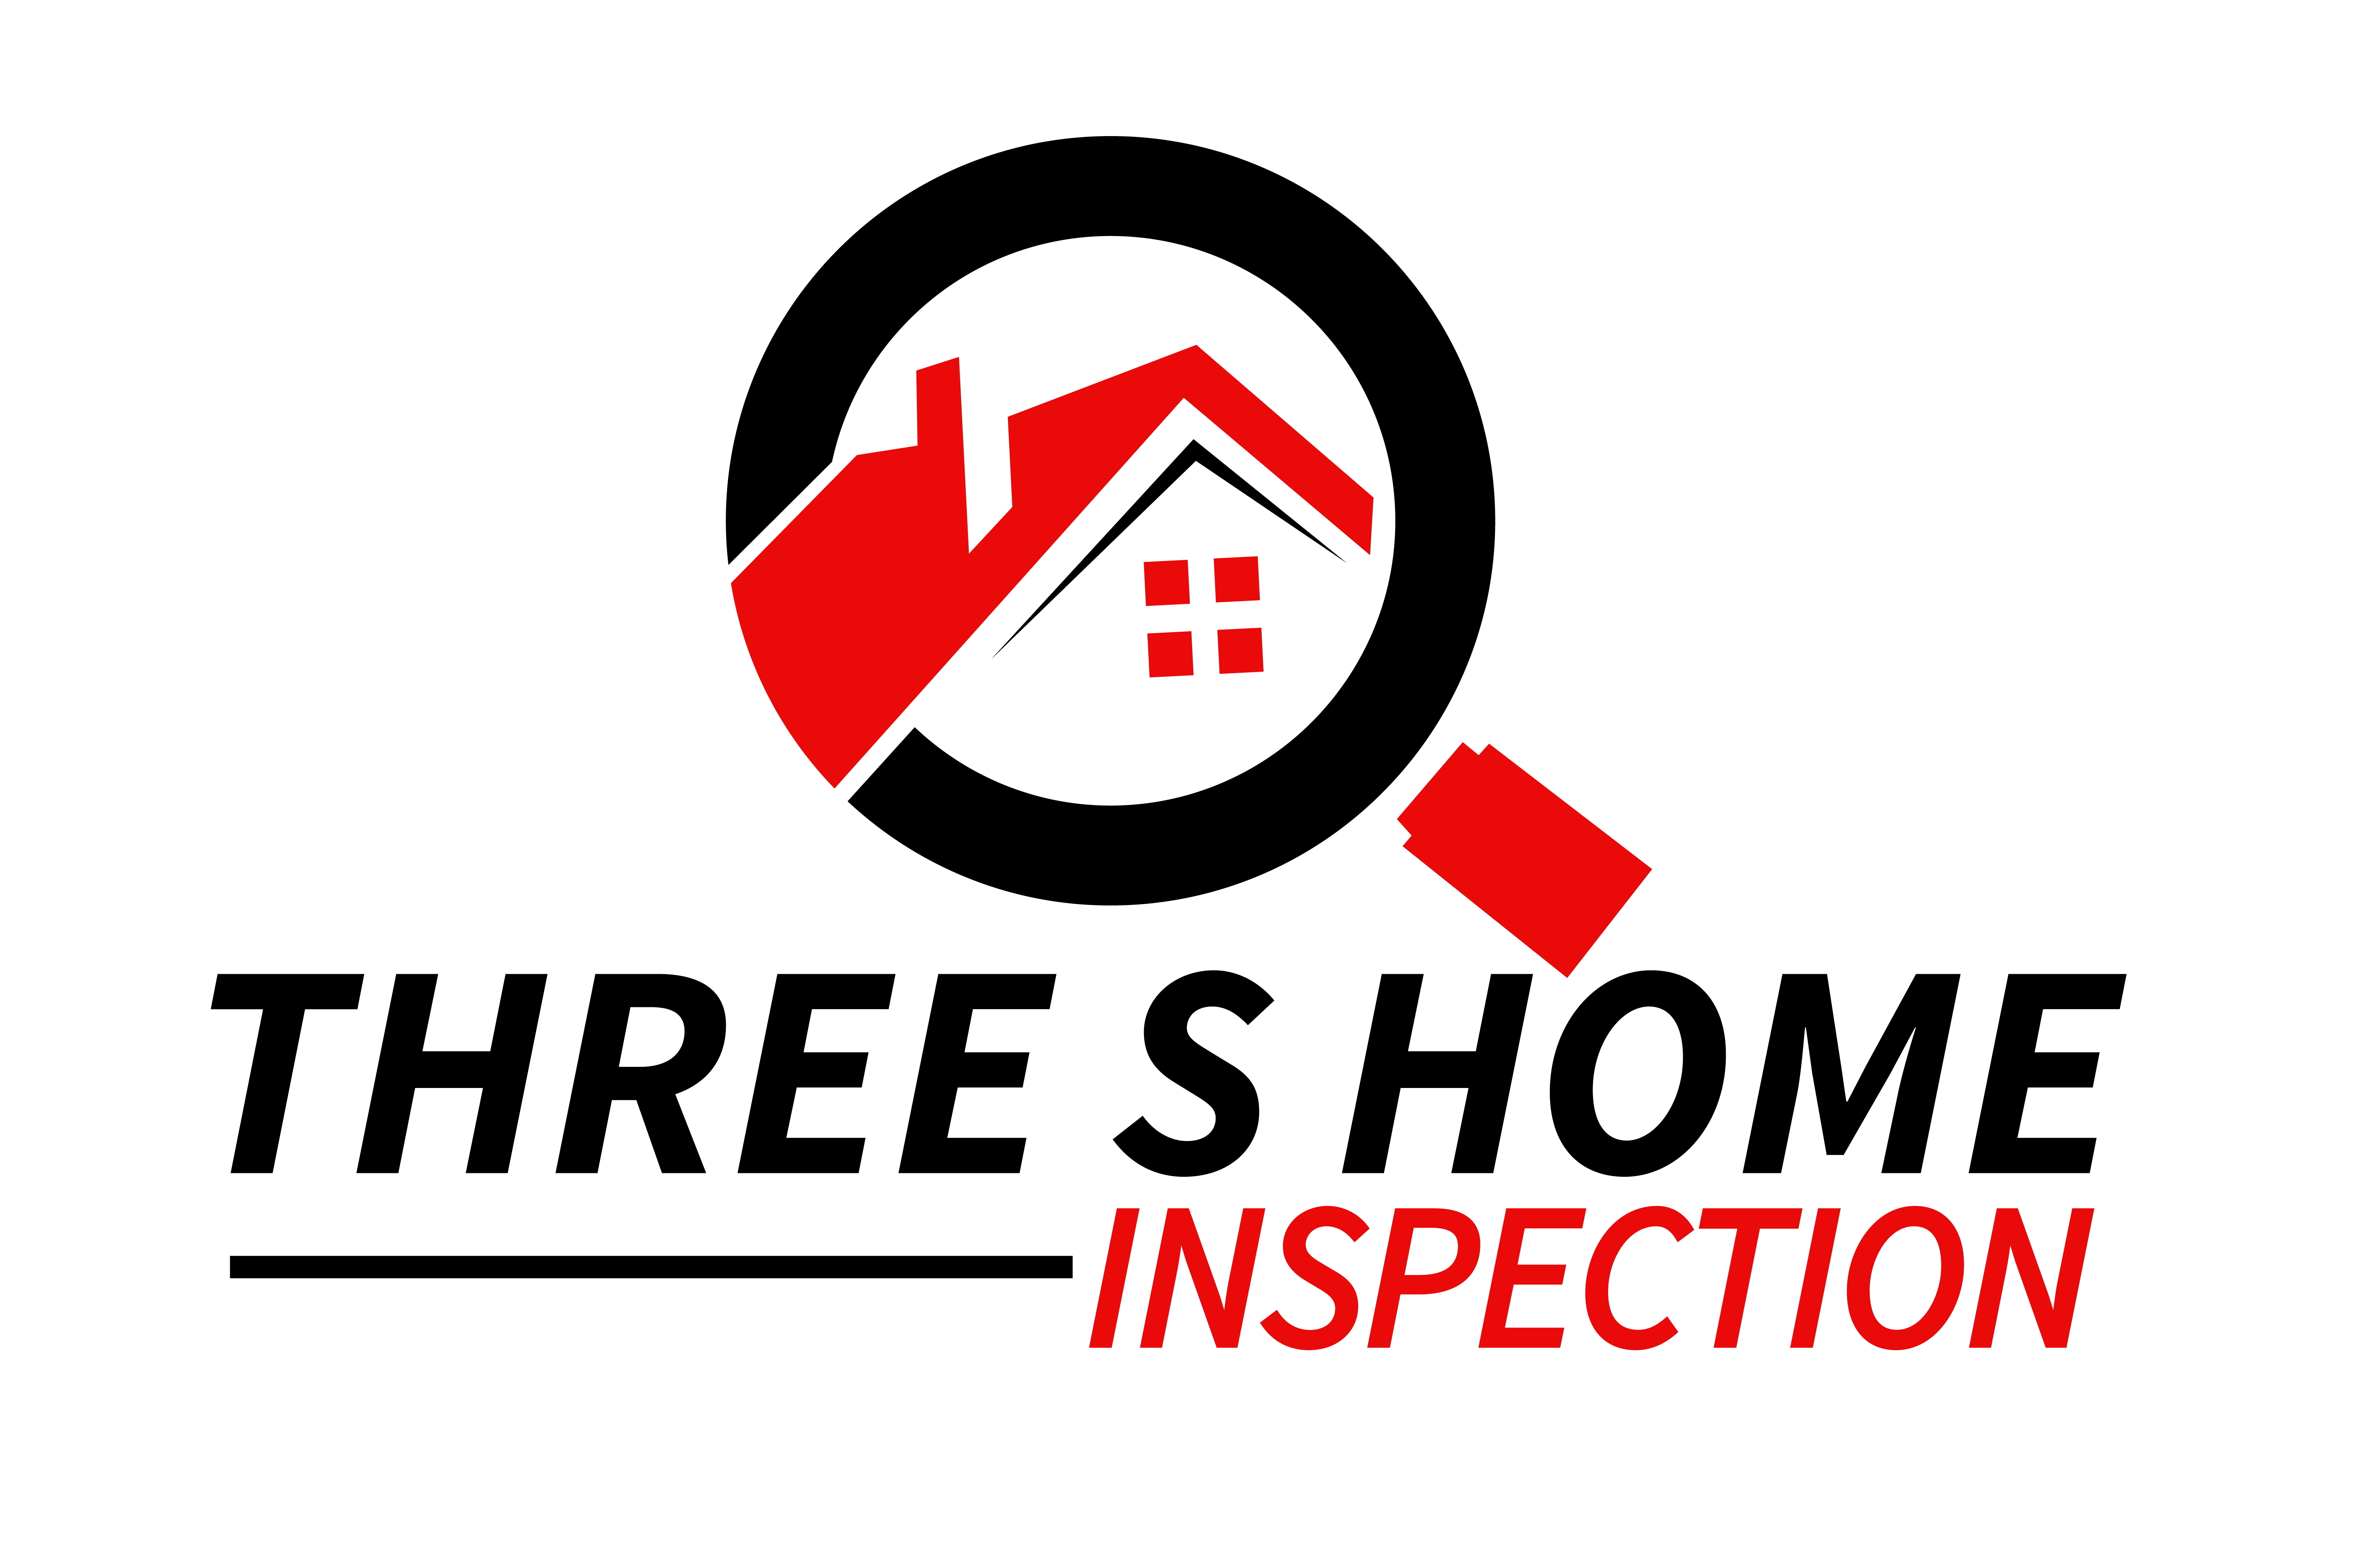 Three s home inspection  vf jpeg